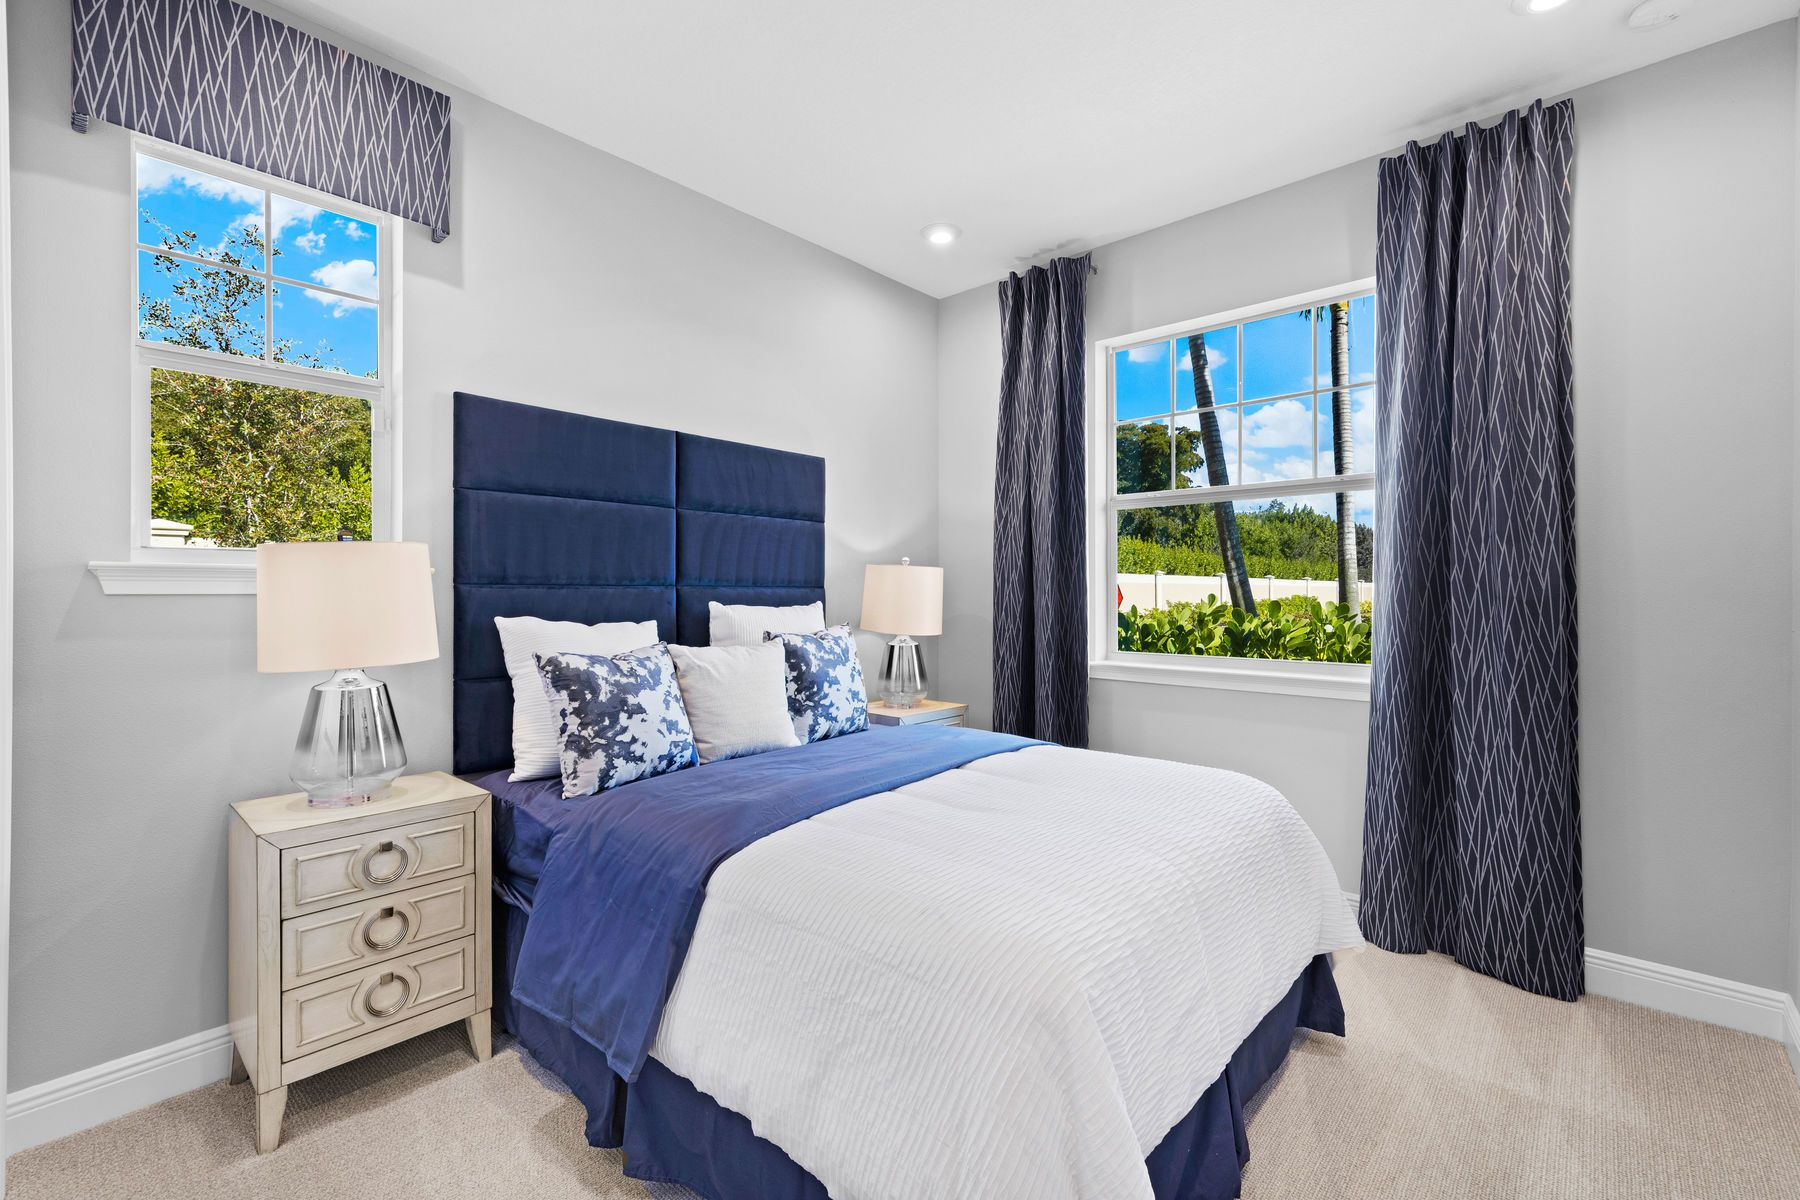 Bedroom featured in the Captiva II By Mattamy Homes in Naples, FL